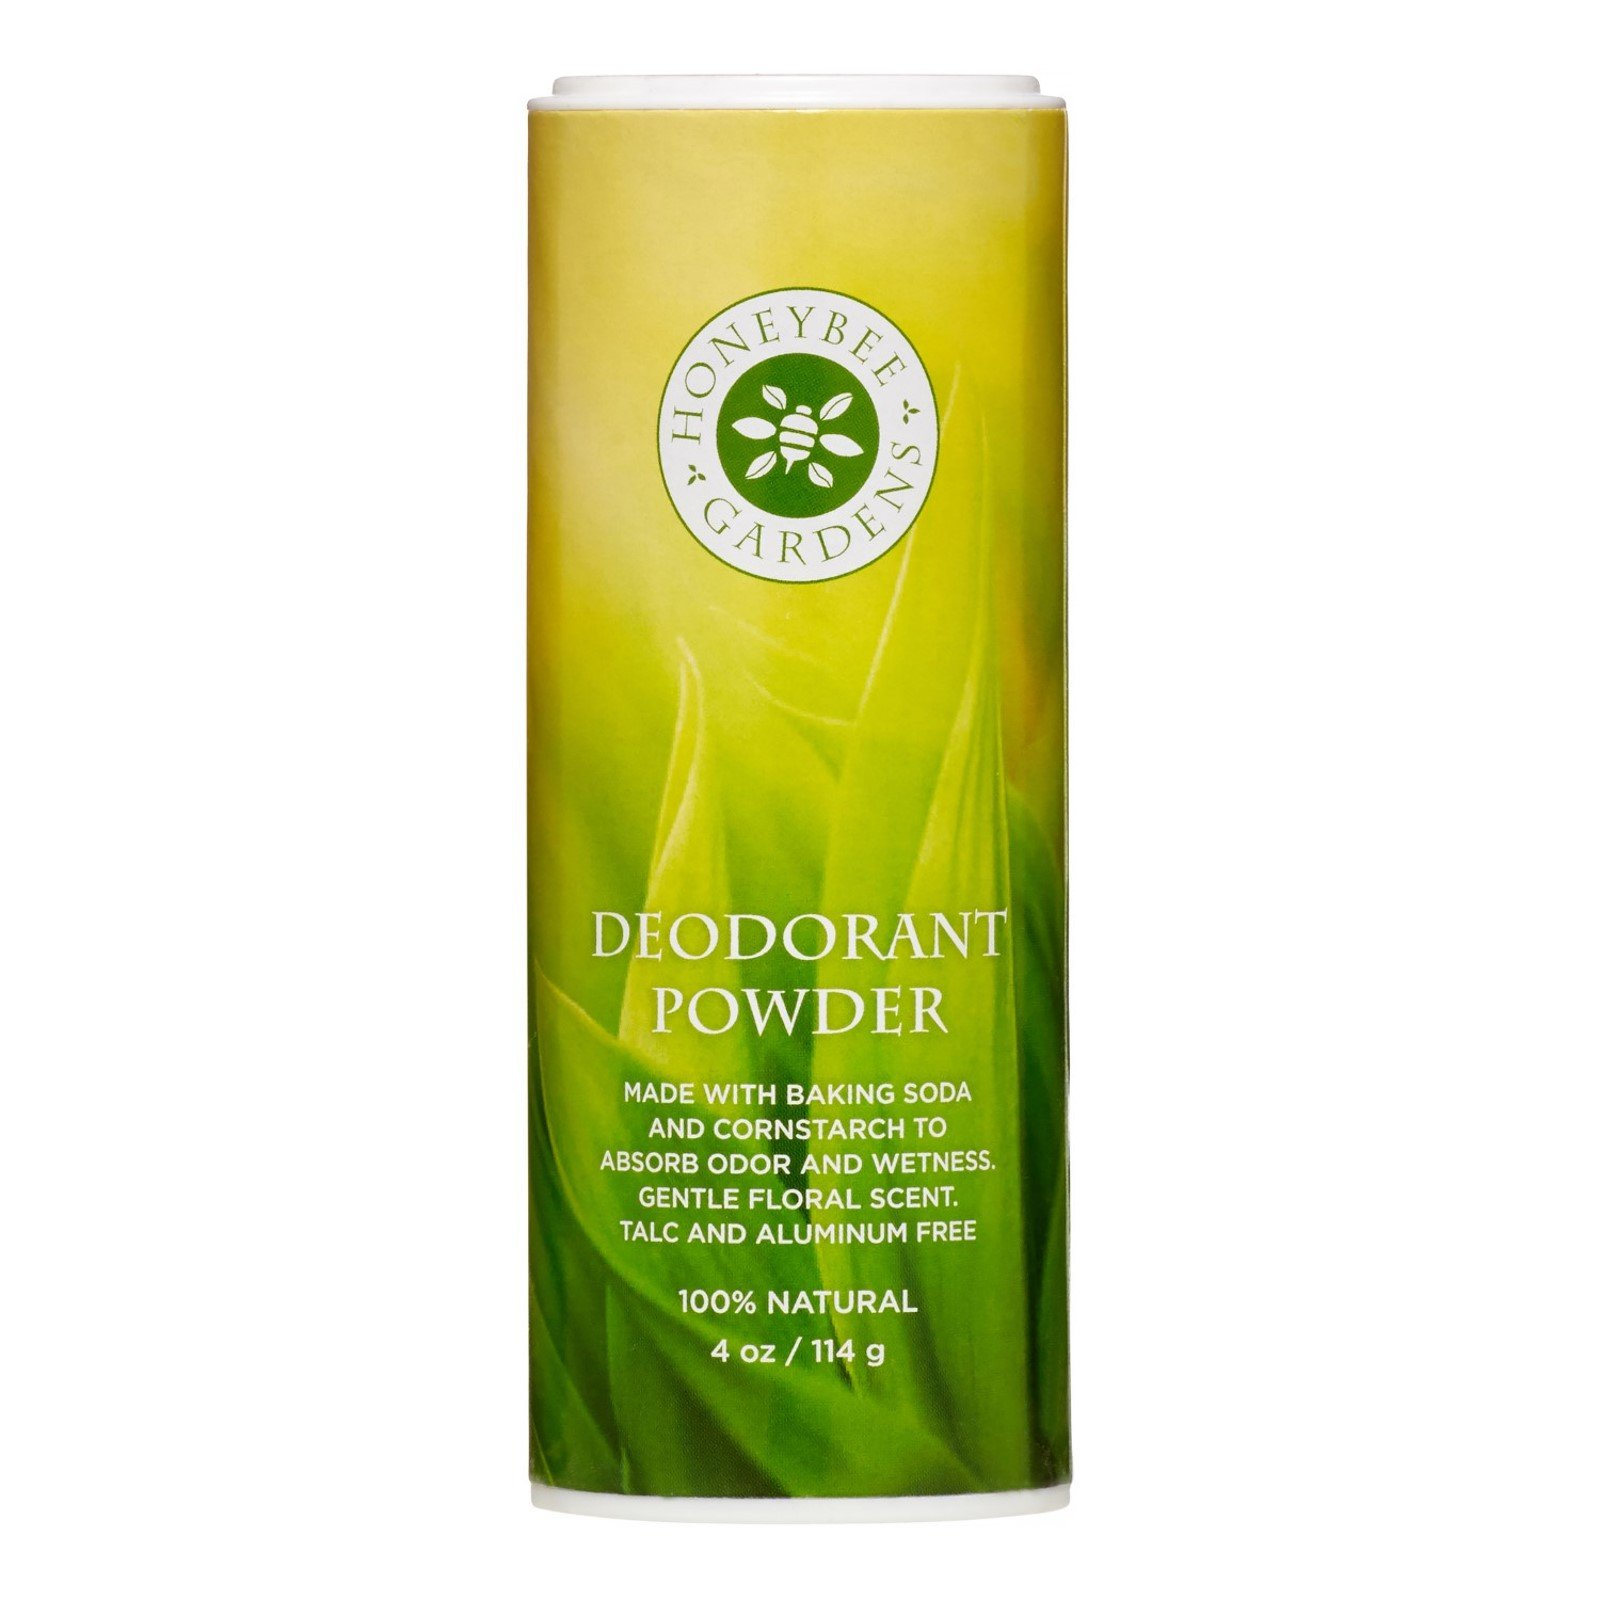 Honeybee Gardens - Deodorant Powder, Aluminum and Talc Free, 4 oz/114 g